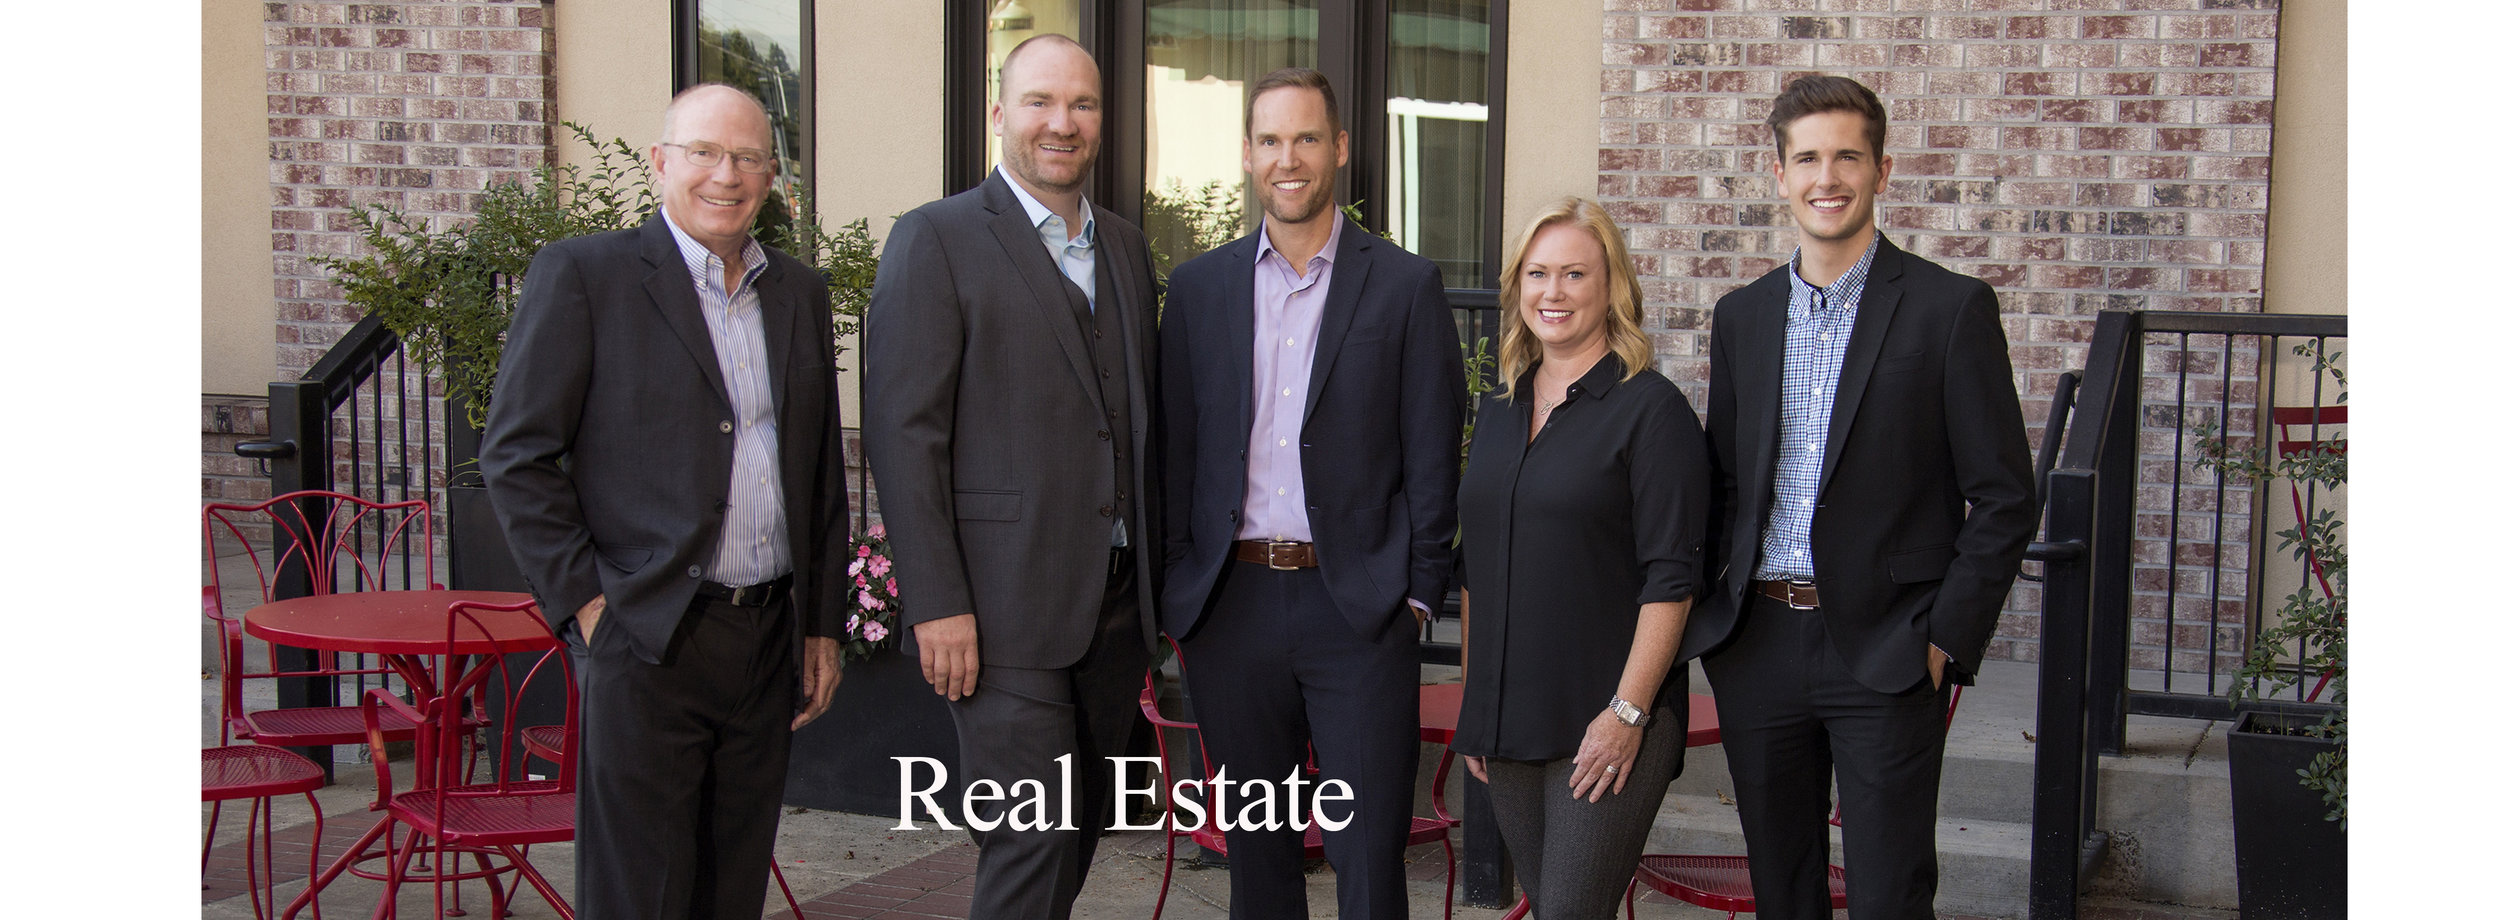 Real Estate firm company website headshots.jpg